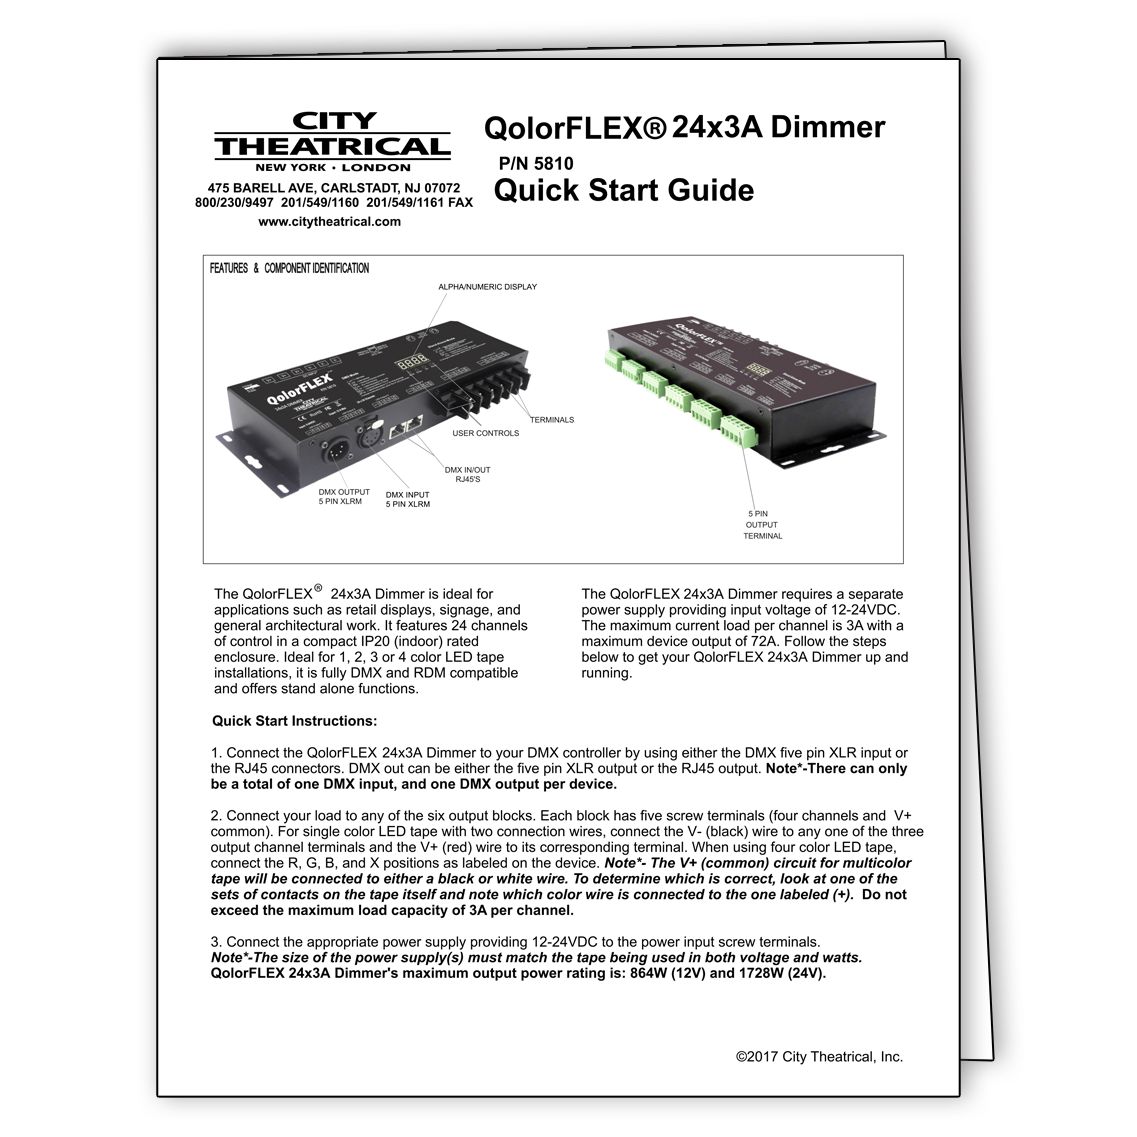 QolorFLEX 24x3A Dimmer Quick Start Guide